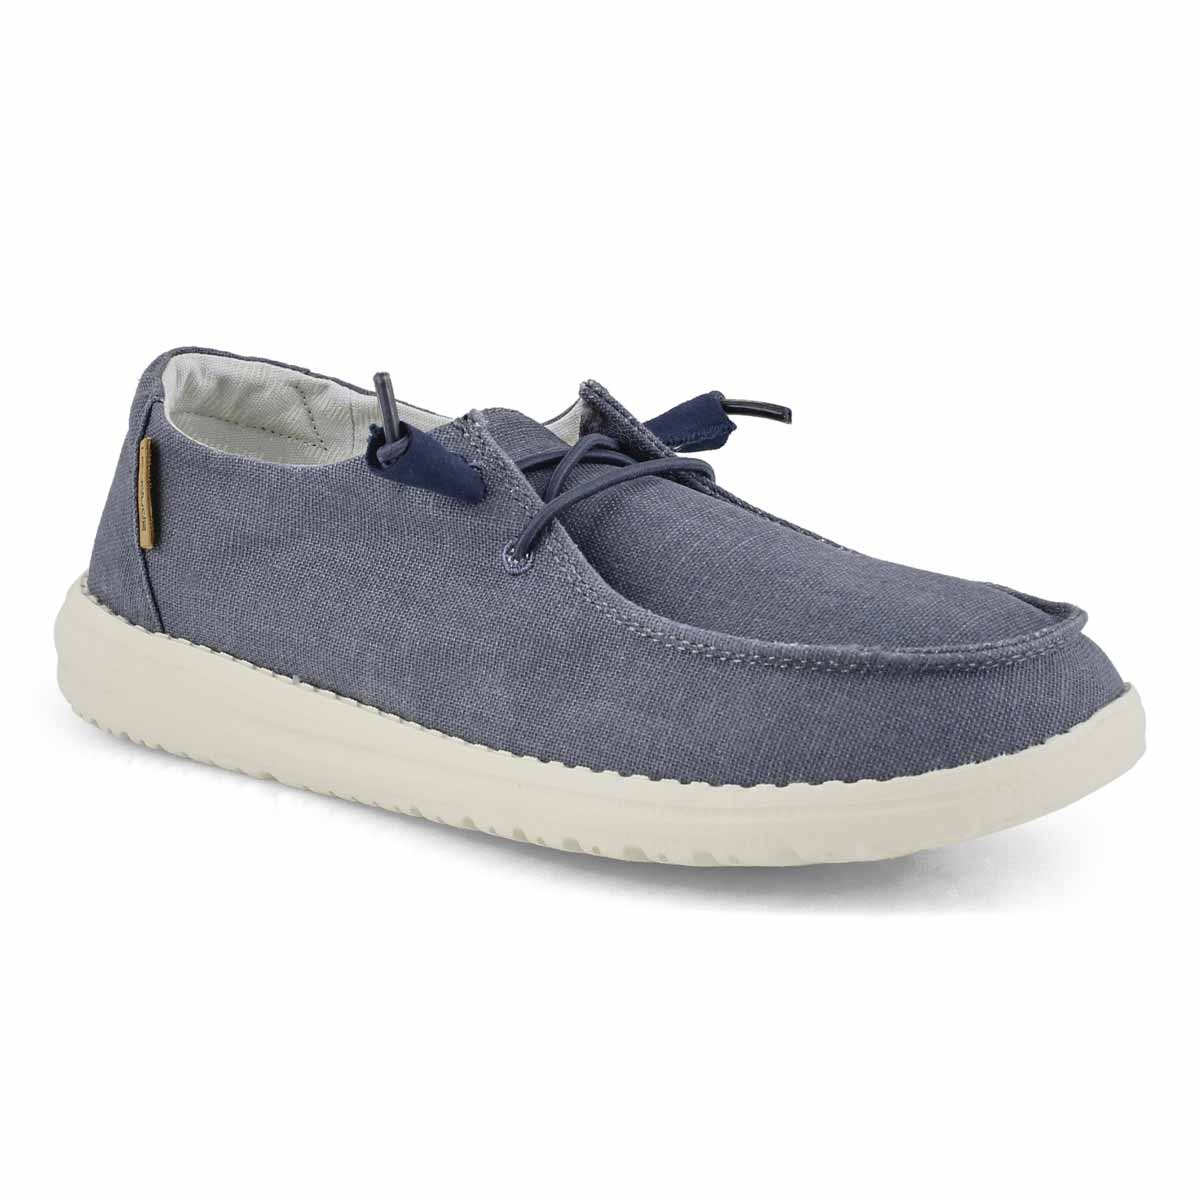 Lds Wendy Chambray navy casual shoe